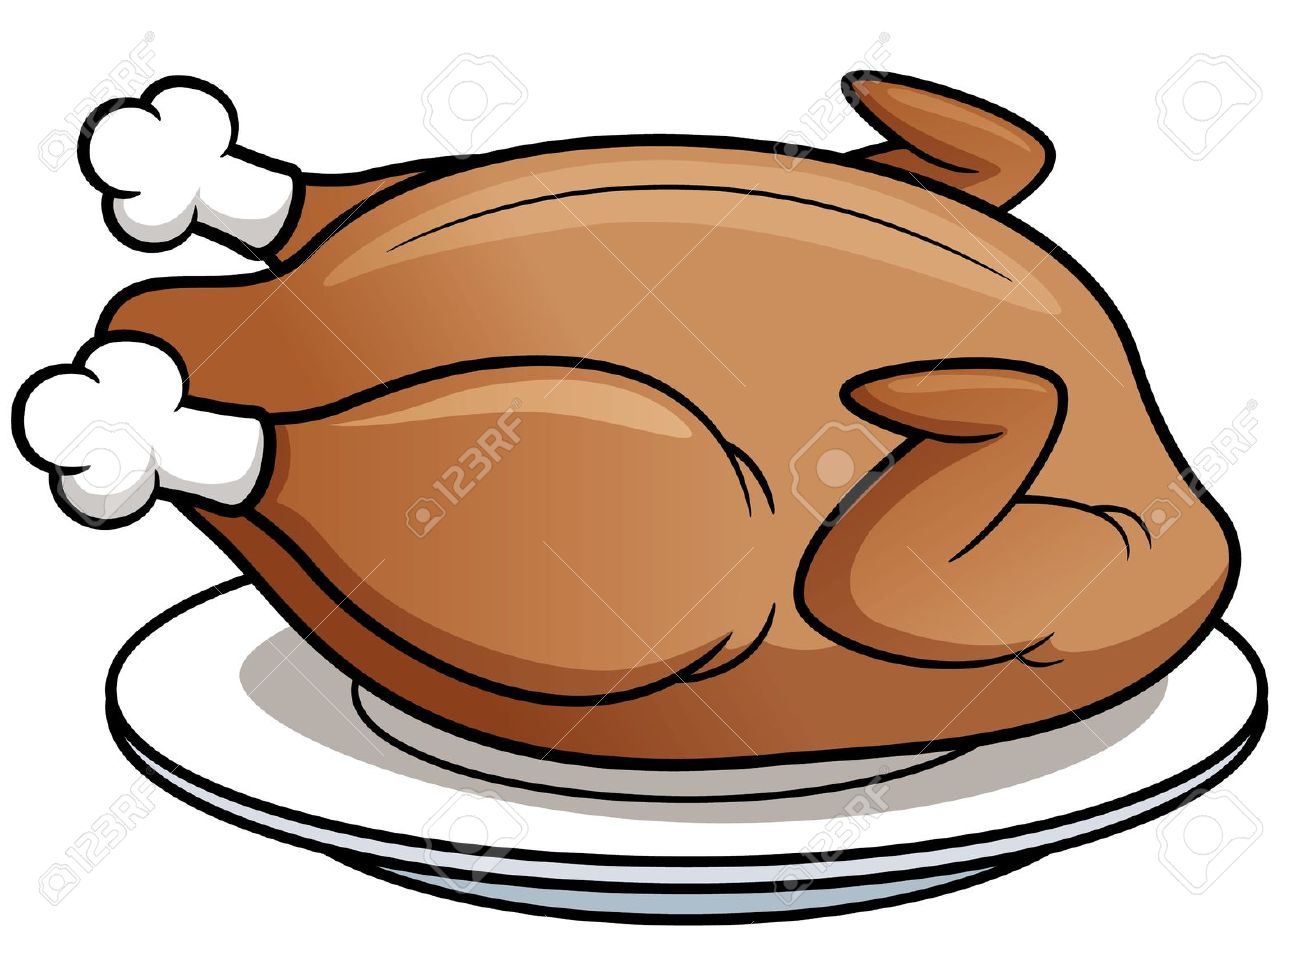 Roasted chicken clipart.